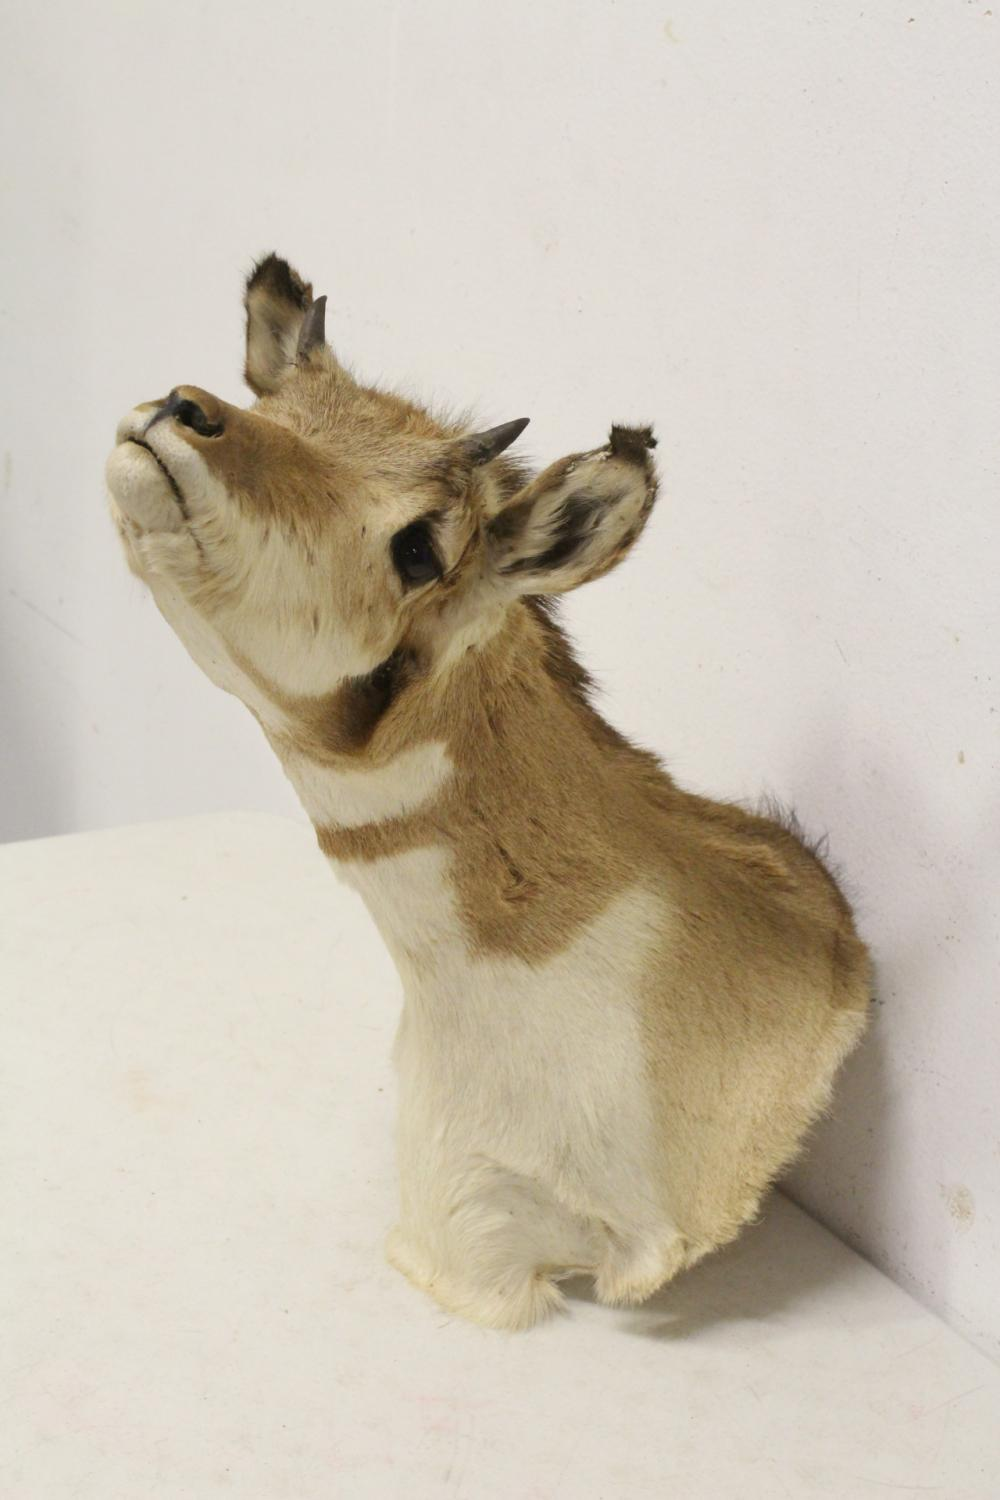 Lot 46: shoulder mount taxidermy of ?